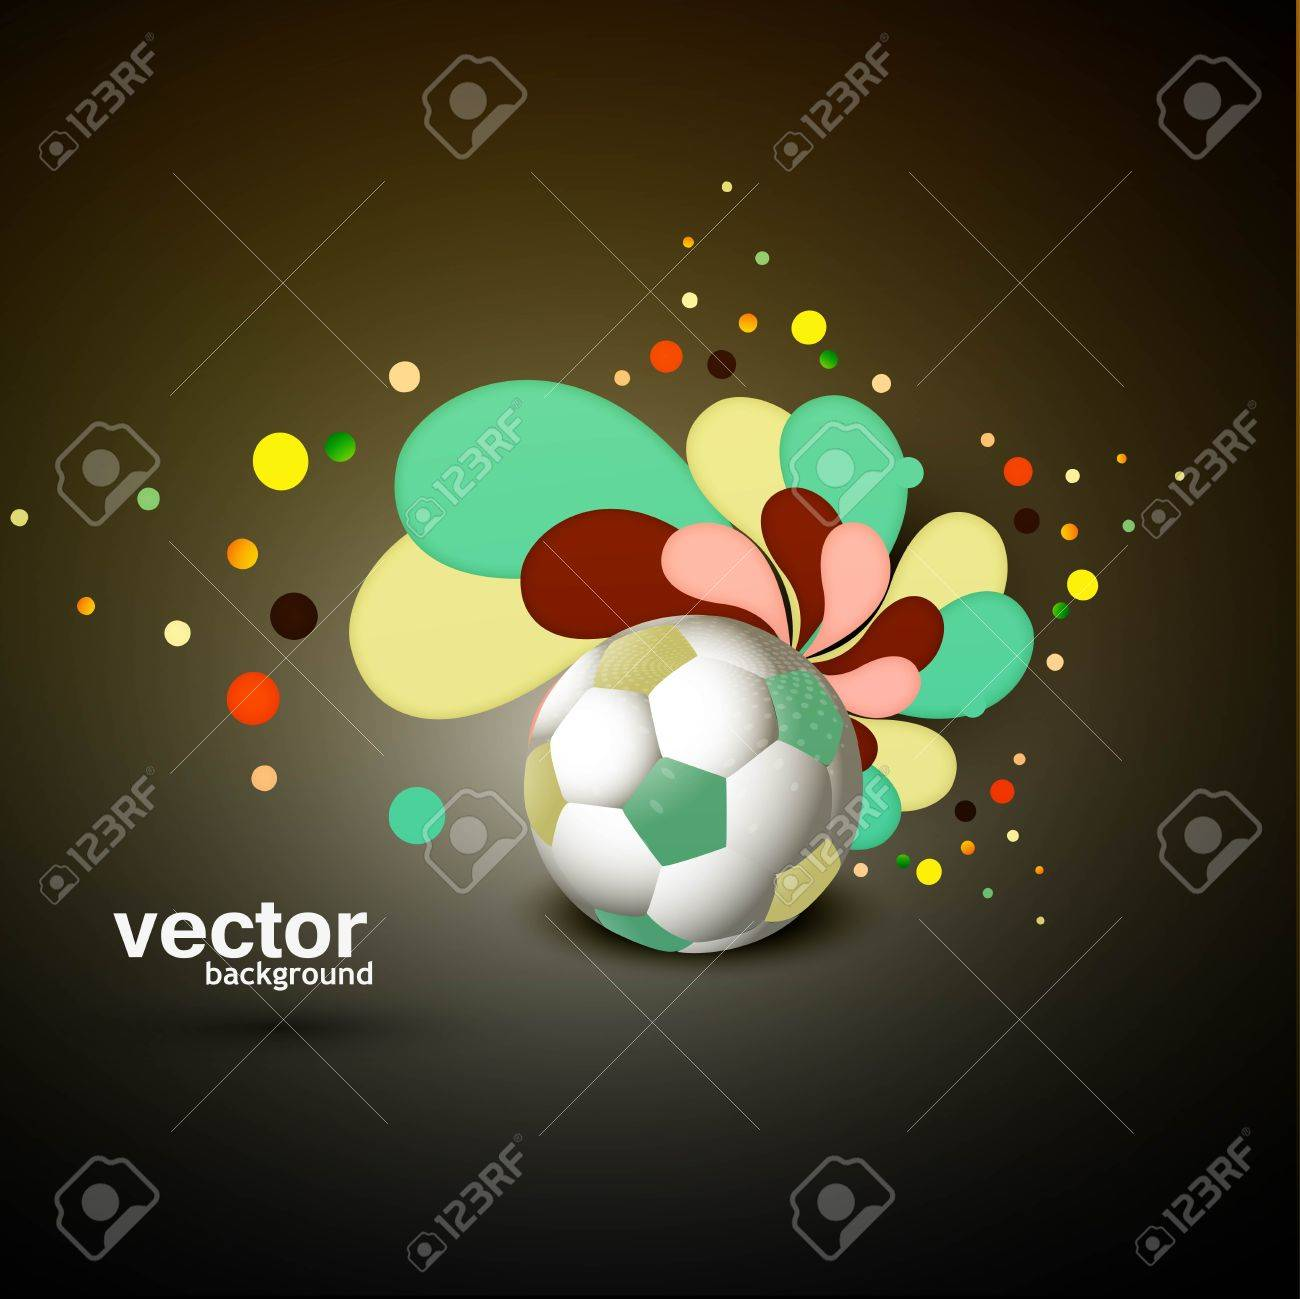 Abstract Football Art Floral Colorful Illustration Vector Background